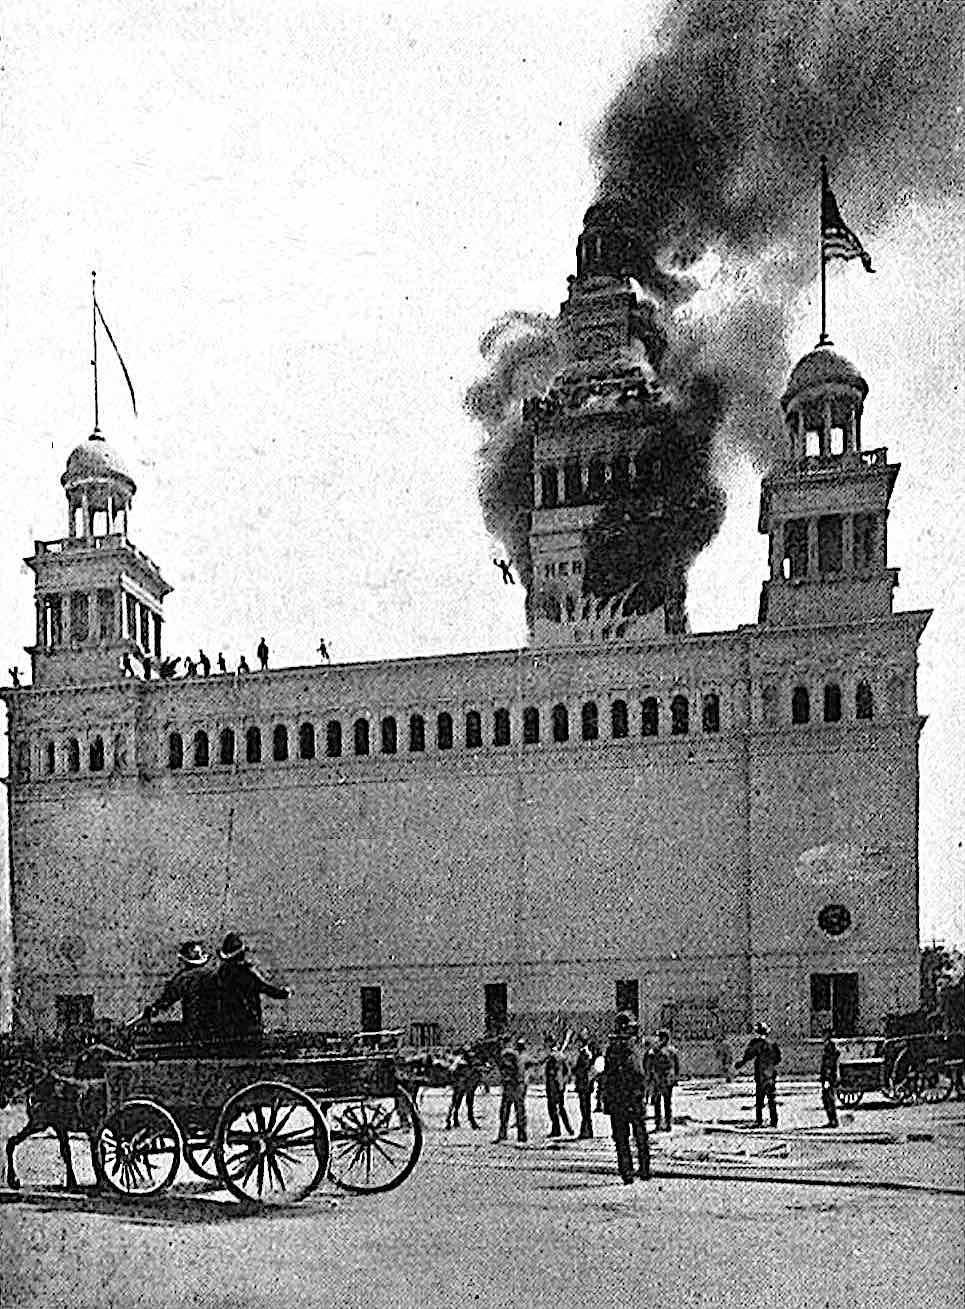 the 1893 Worlds Fair fire in a photograph